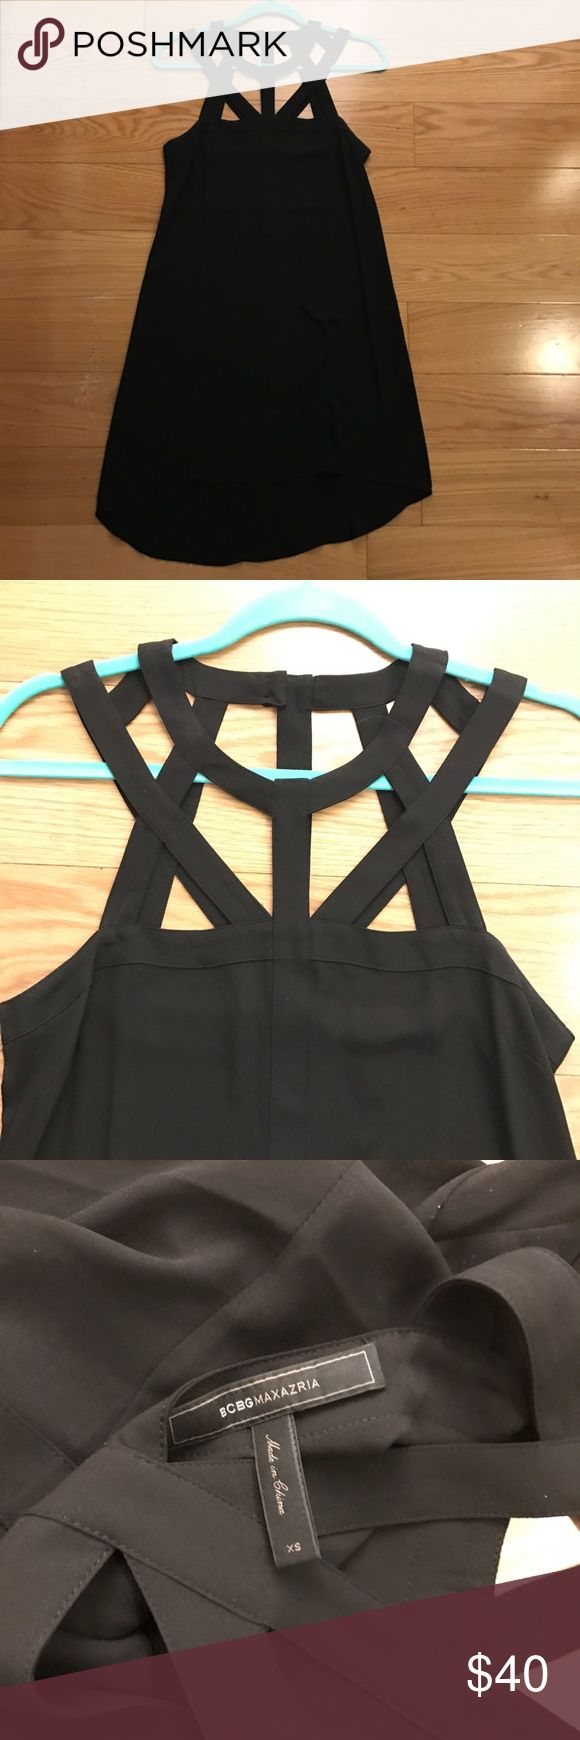 Strappy/Cage Top BCBGMAXAZRIA Dress Like new!! Only worn once. Black BCBGMAXAZRIA dress with strappy/cage top detail. Sexy LBD. Great for a night out or cocktail hour! Would definitely recommend wearing a slip under this as it's kind of sheer BCBGMaxAzria Dresses